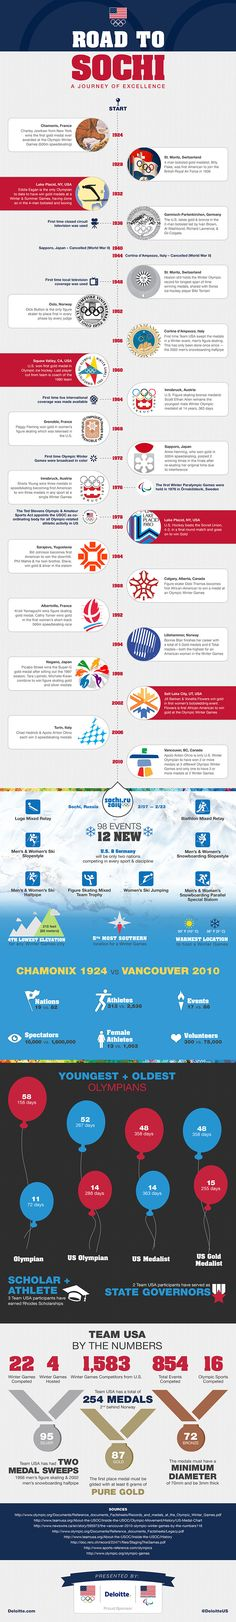 Road to Sochi: A Journey of Excellence infographic presented by Deloitte